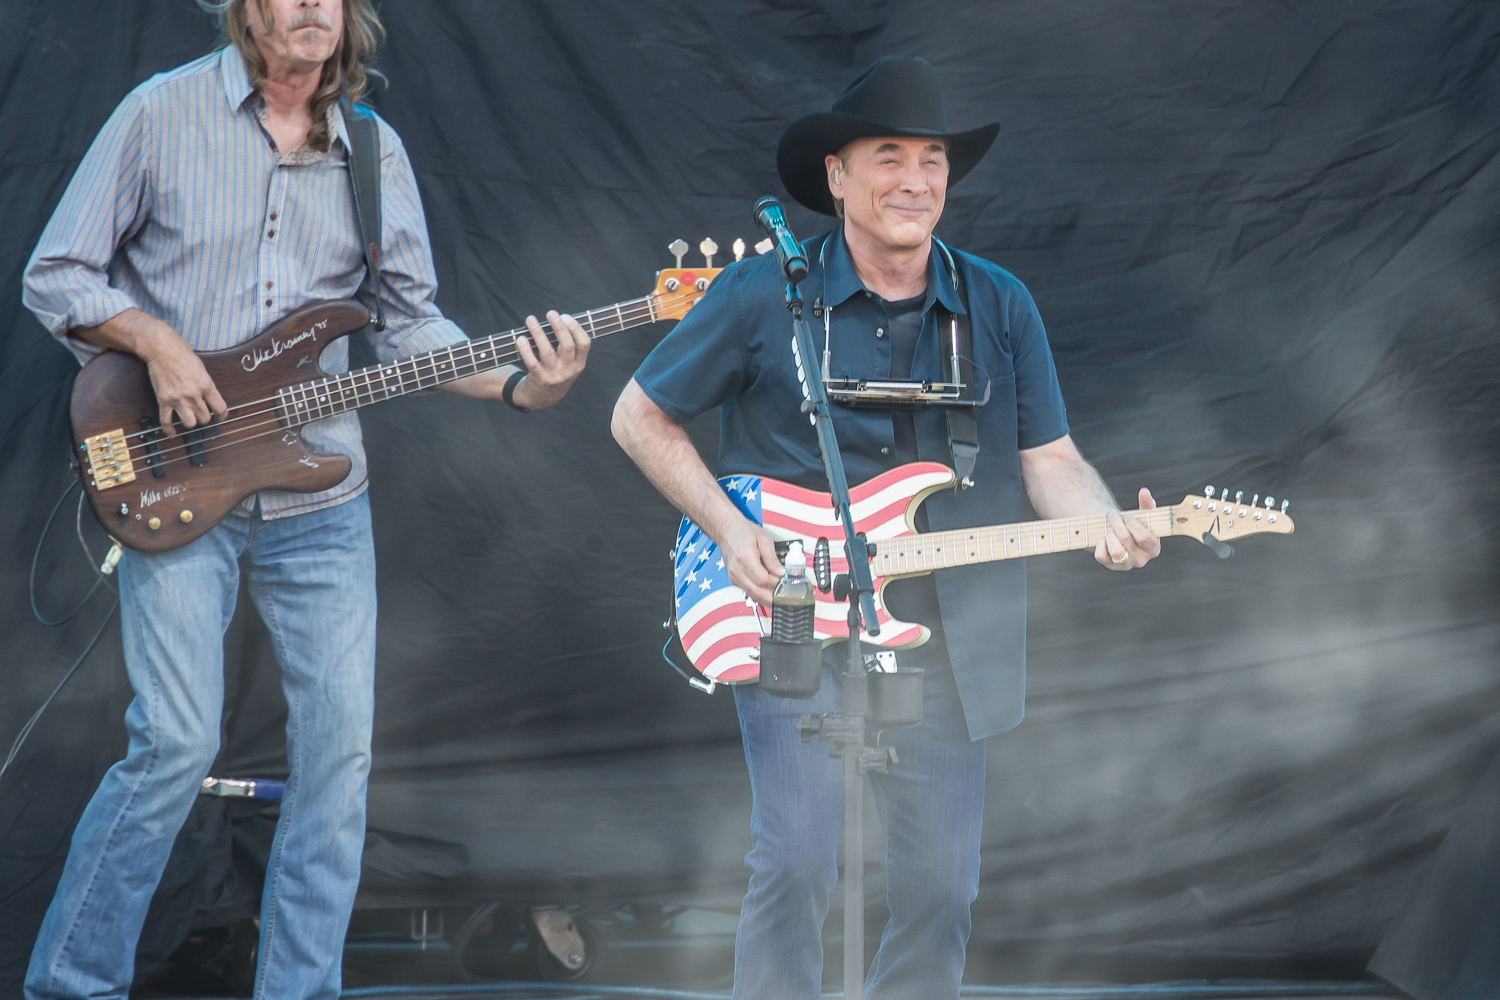 Clint Black at the Watershed Music Festival 2018 at The Gorge Amphitheatre. (Photo by David Conger / davidconger.com)